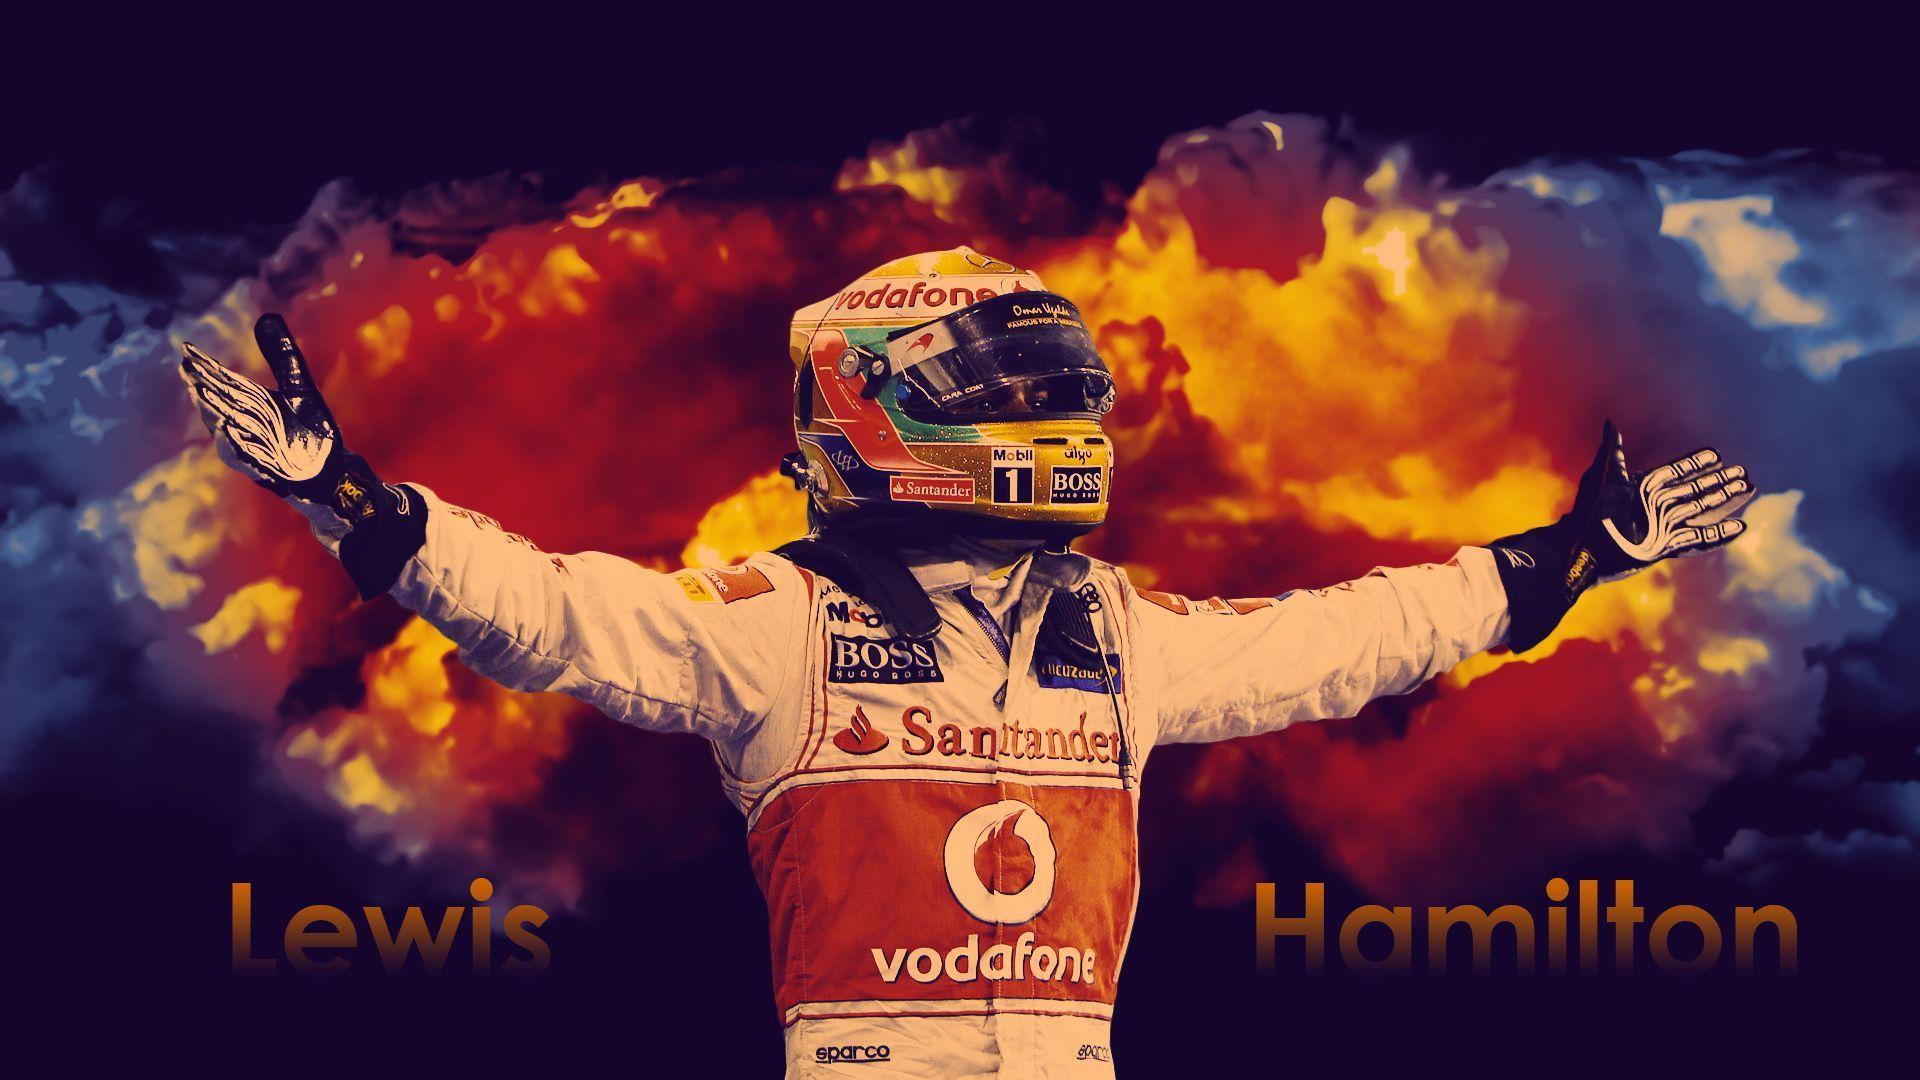 lewis hamilton wallpapers - wallpaper cave